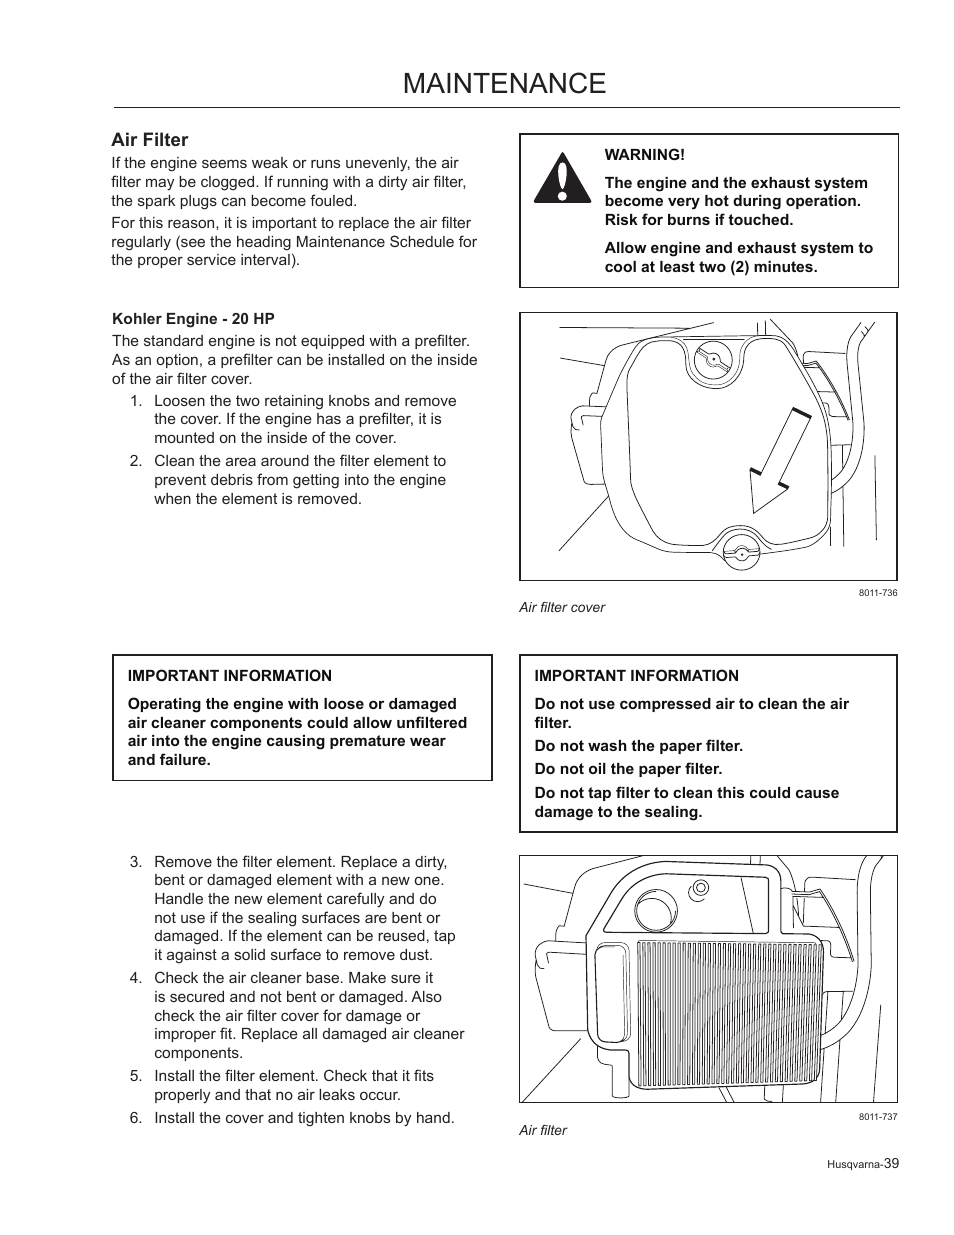 Air filter, Kohler engine - 20 hp, Maintenance | Husqvarna 965881201 User  Manual | Page 39 / 76